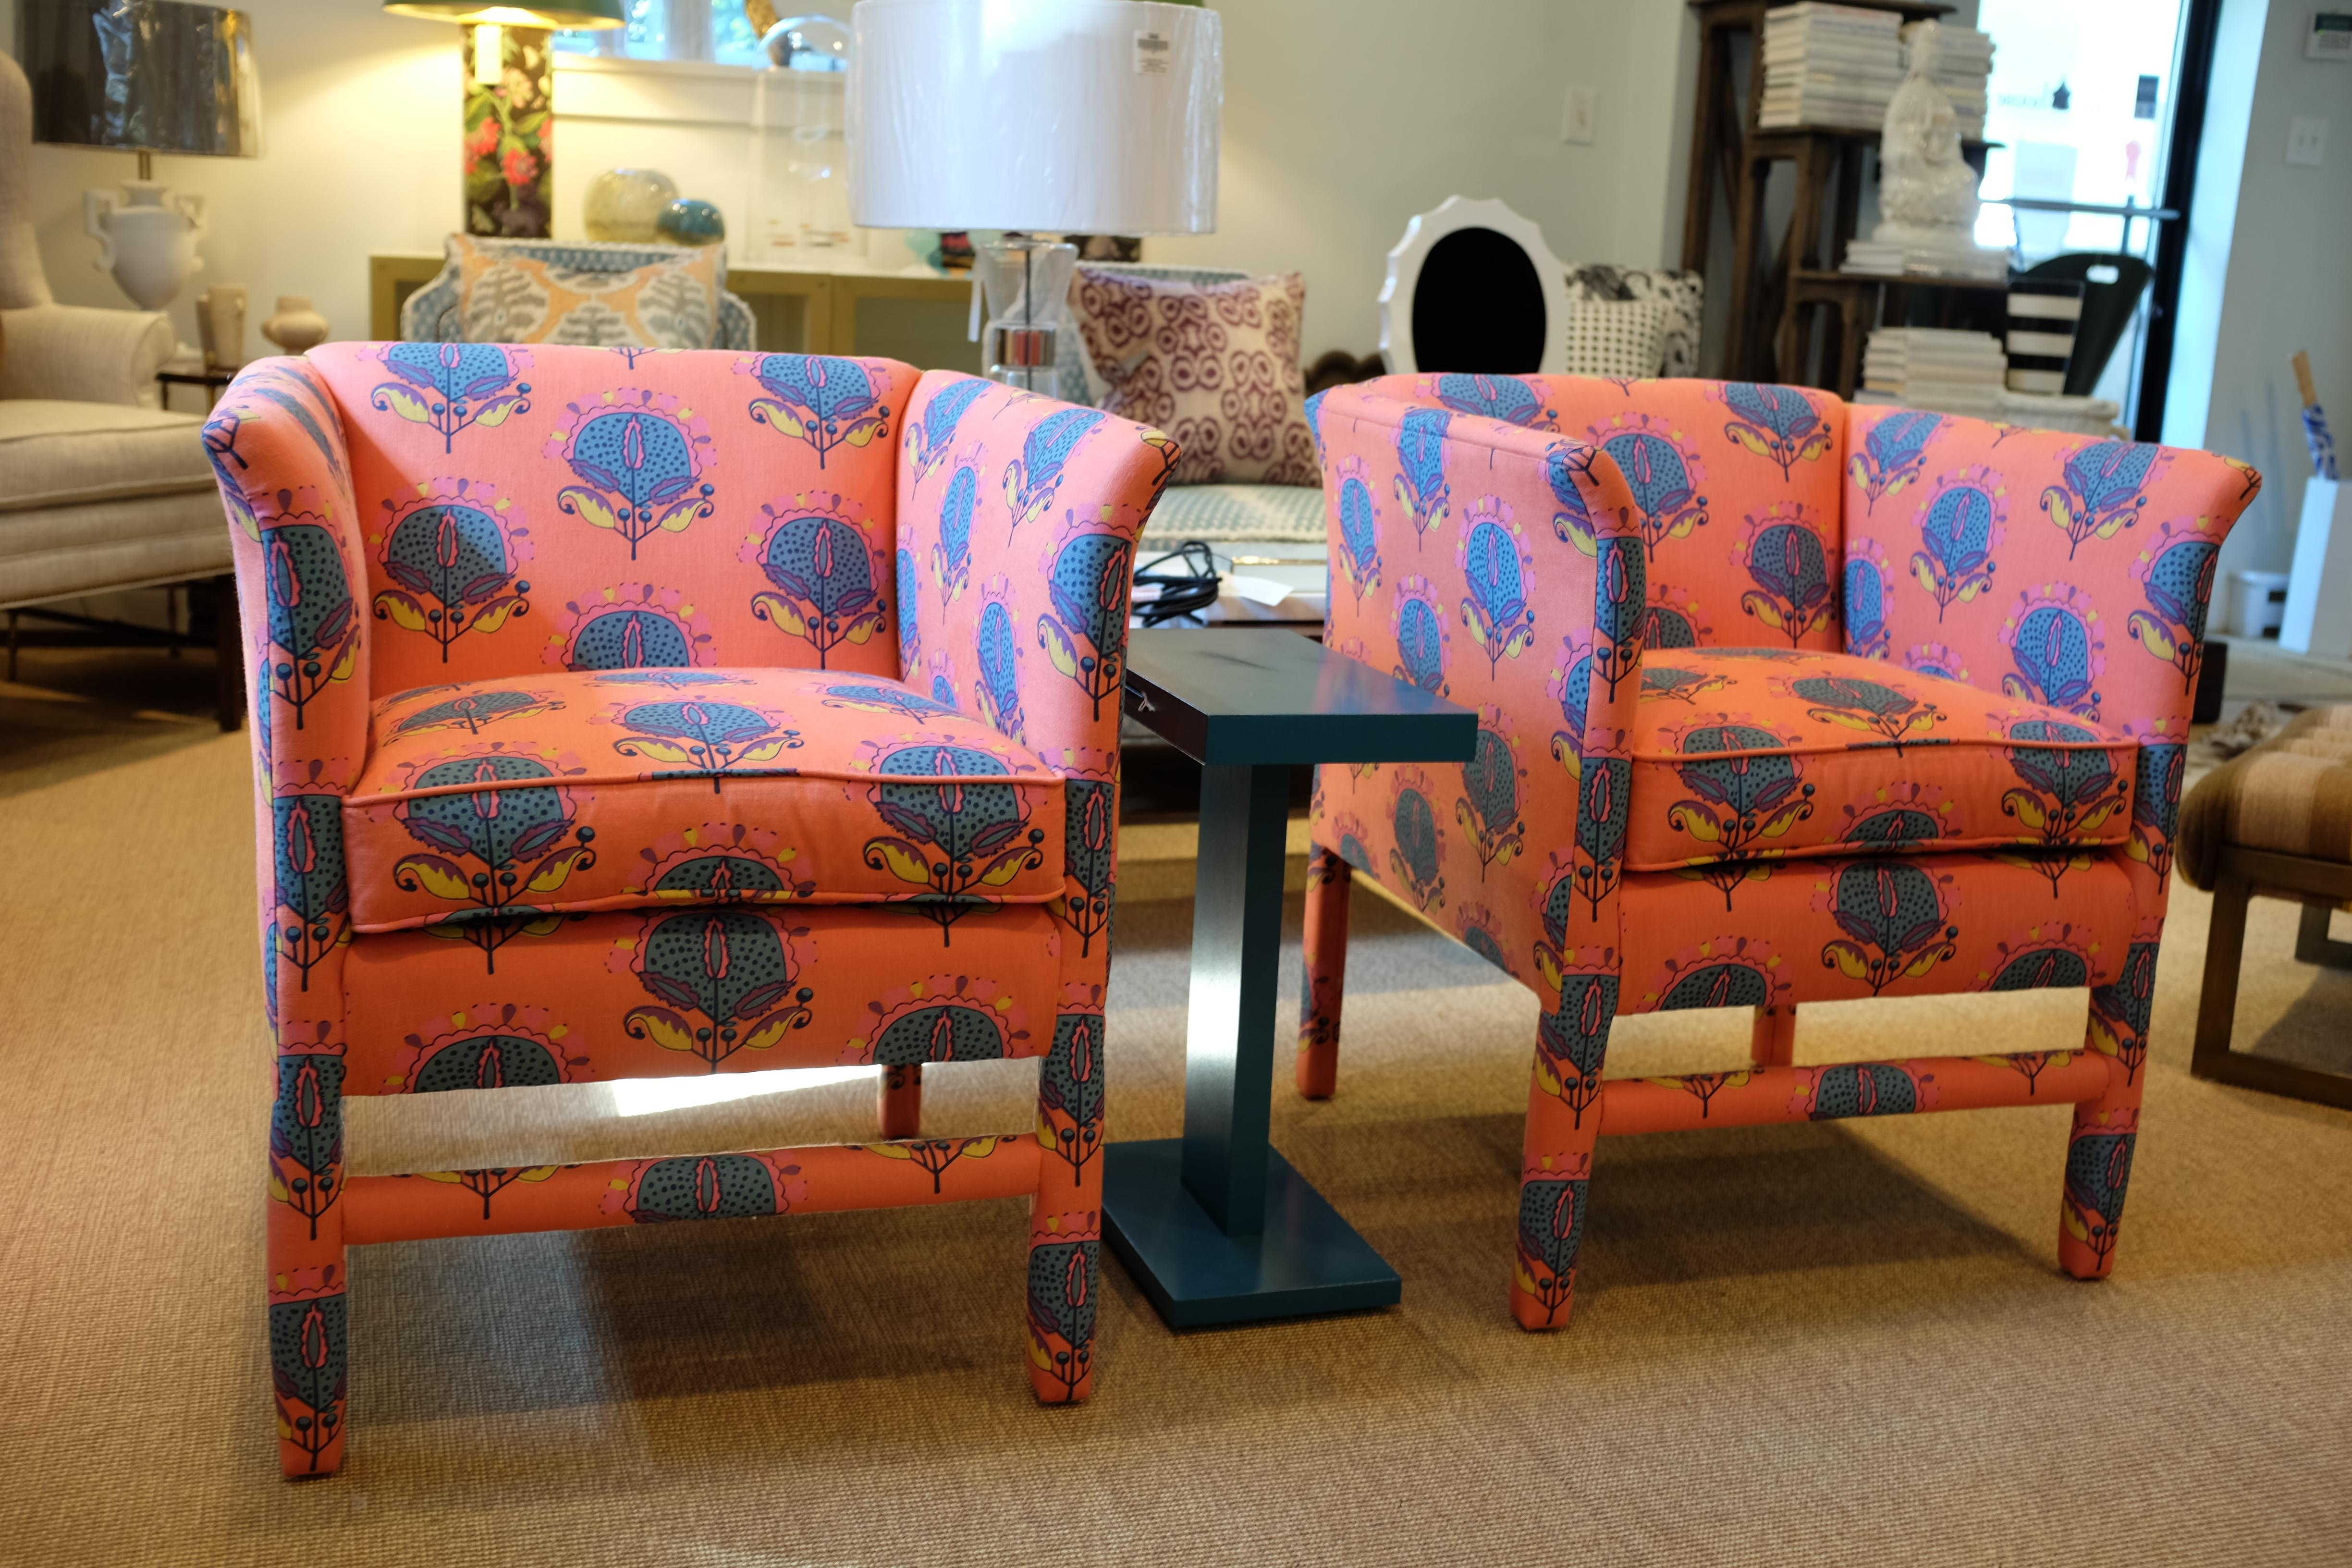 This Is A Beautiful Pair Of Highland House Chairs From Our Interior Design  Studio. The